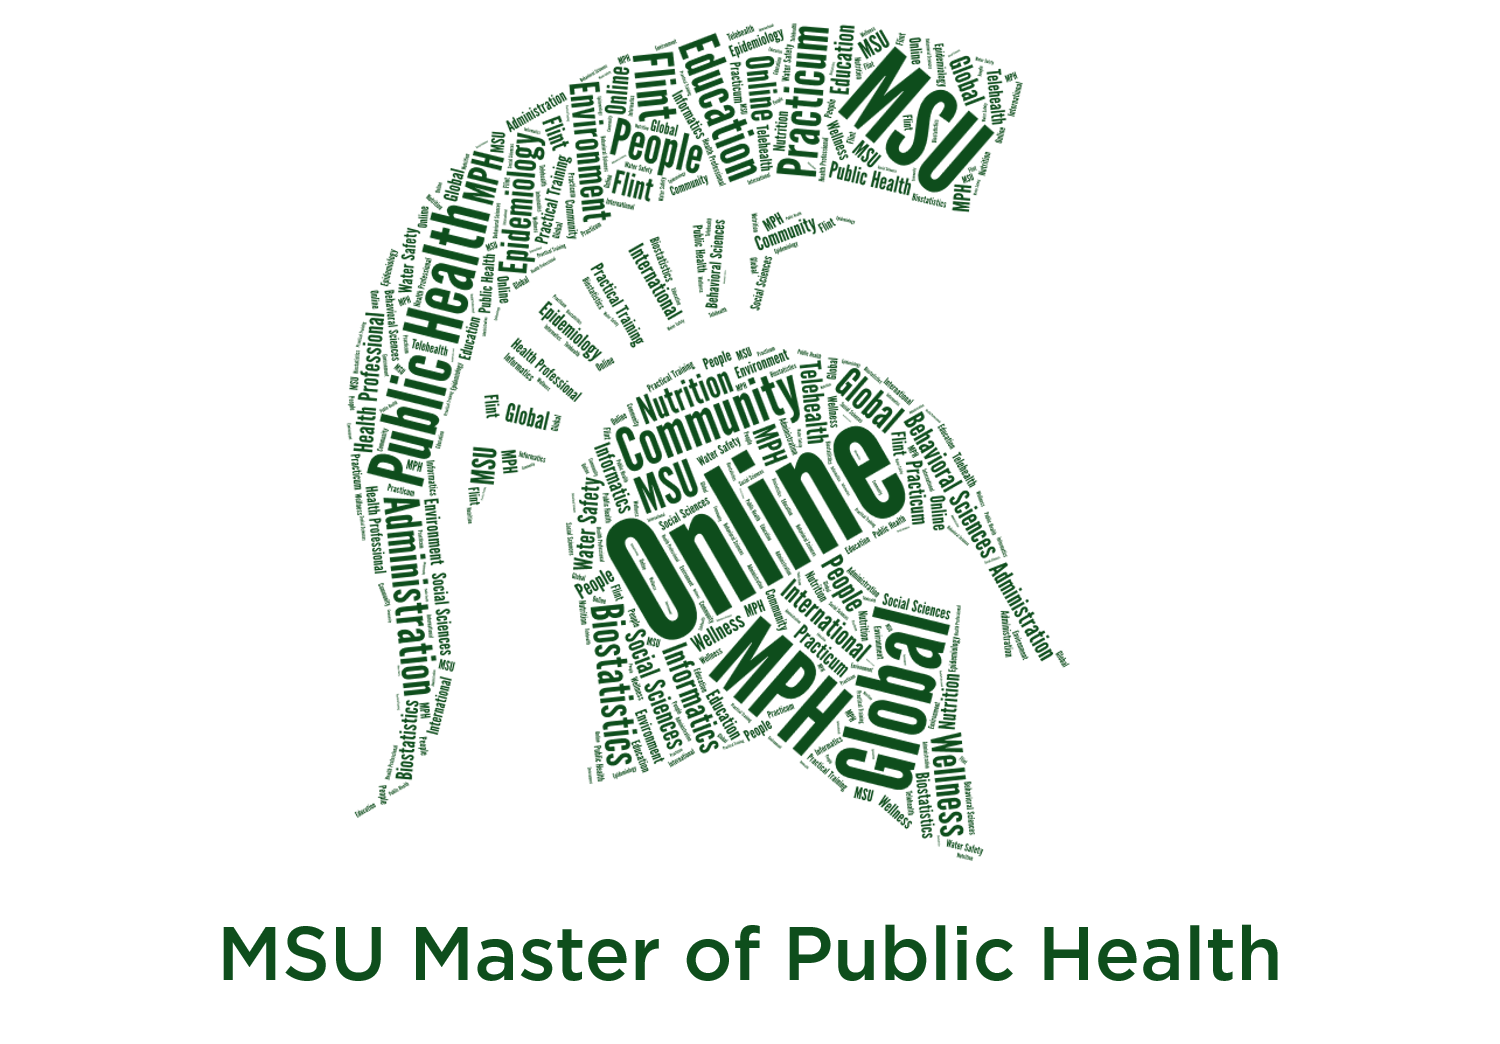 Spartan head logo made up of MPH related words